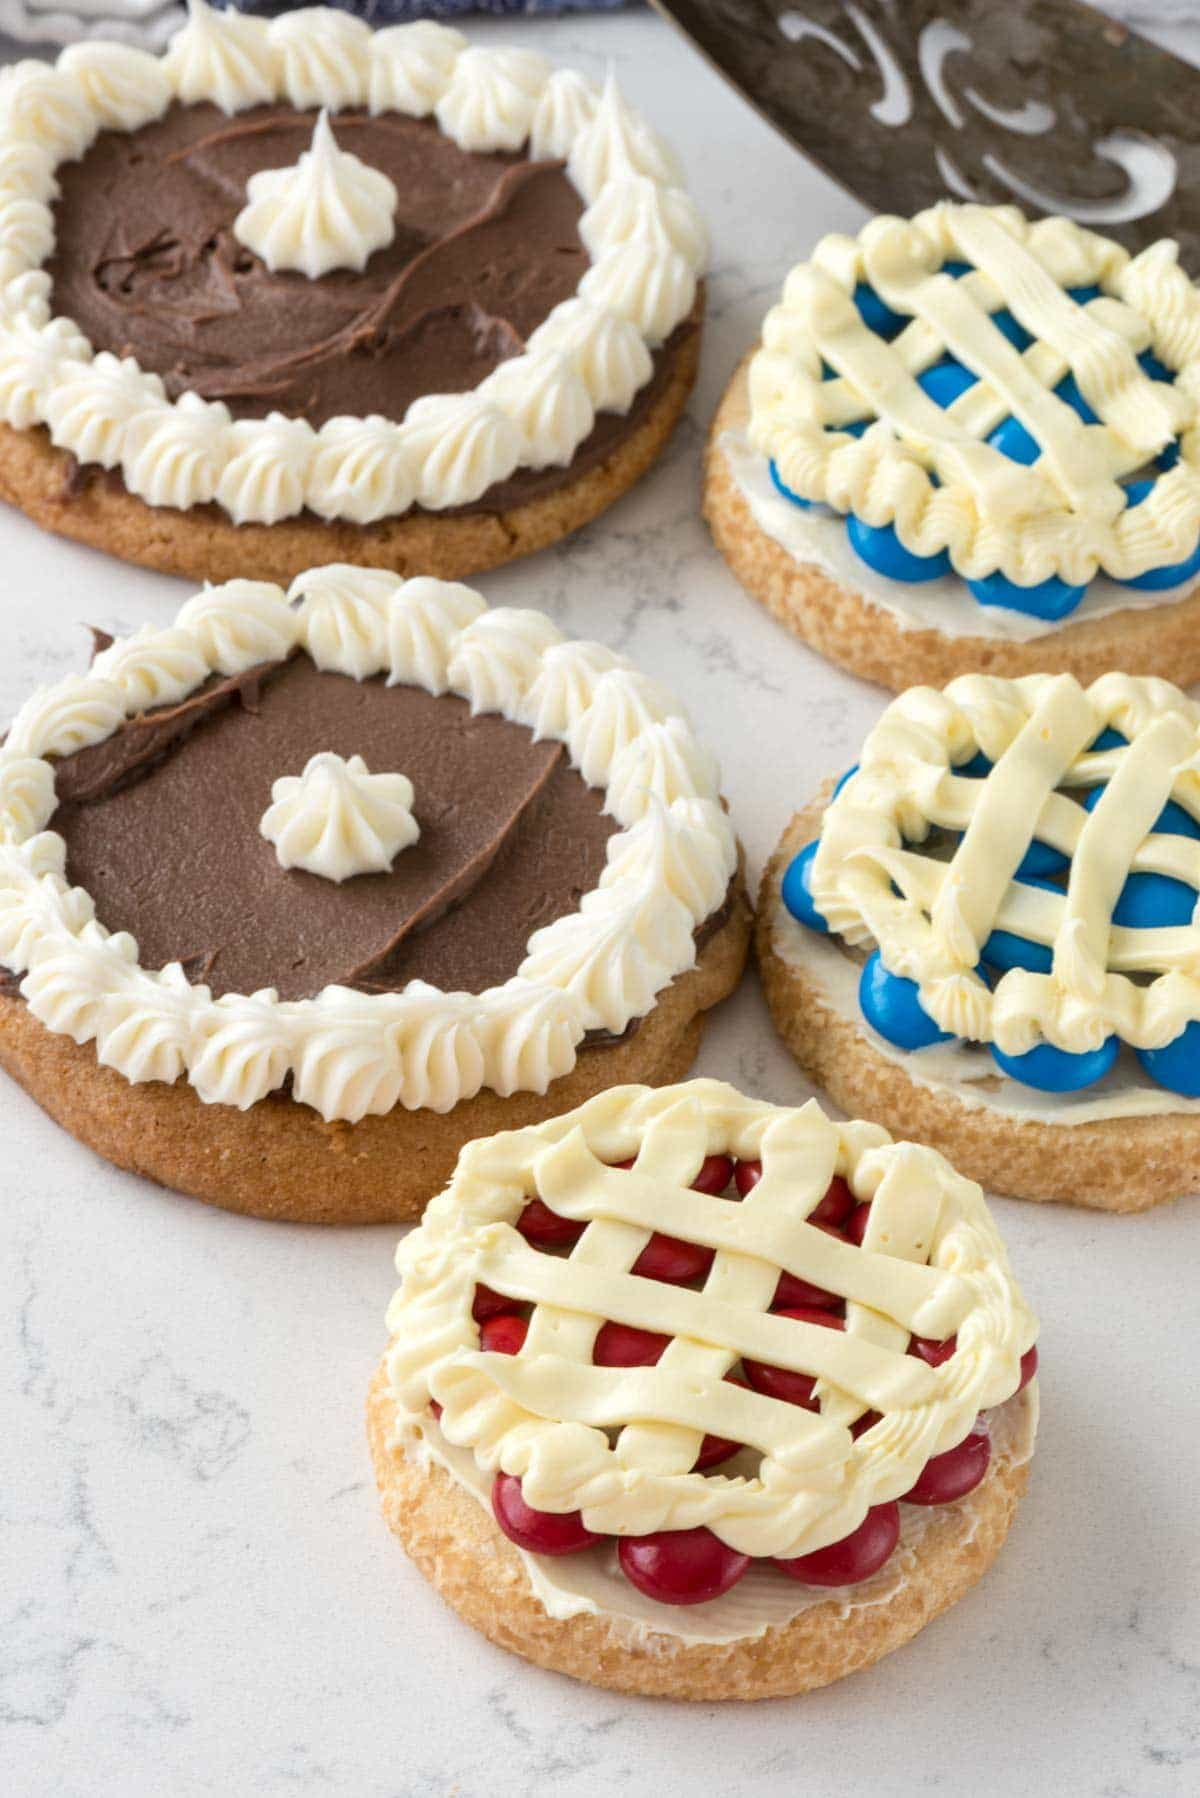 Easy Pie Cookies Recipe - chocolate cream, cherry, and blueberry pie cookies.